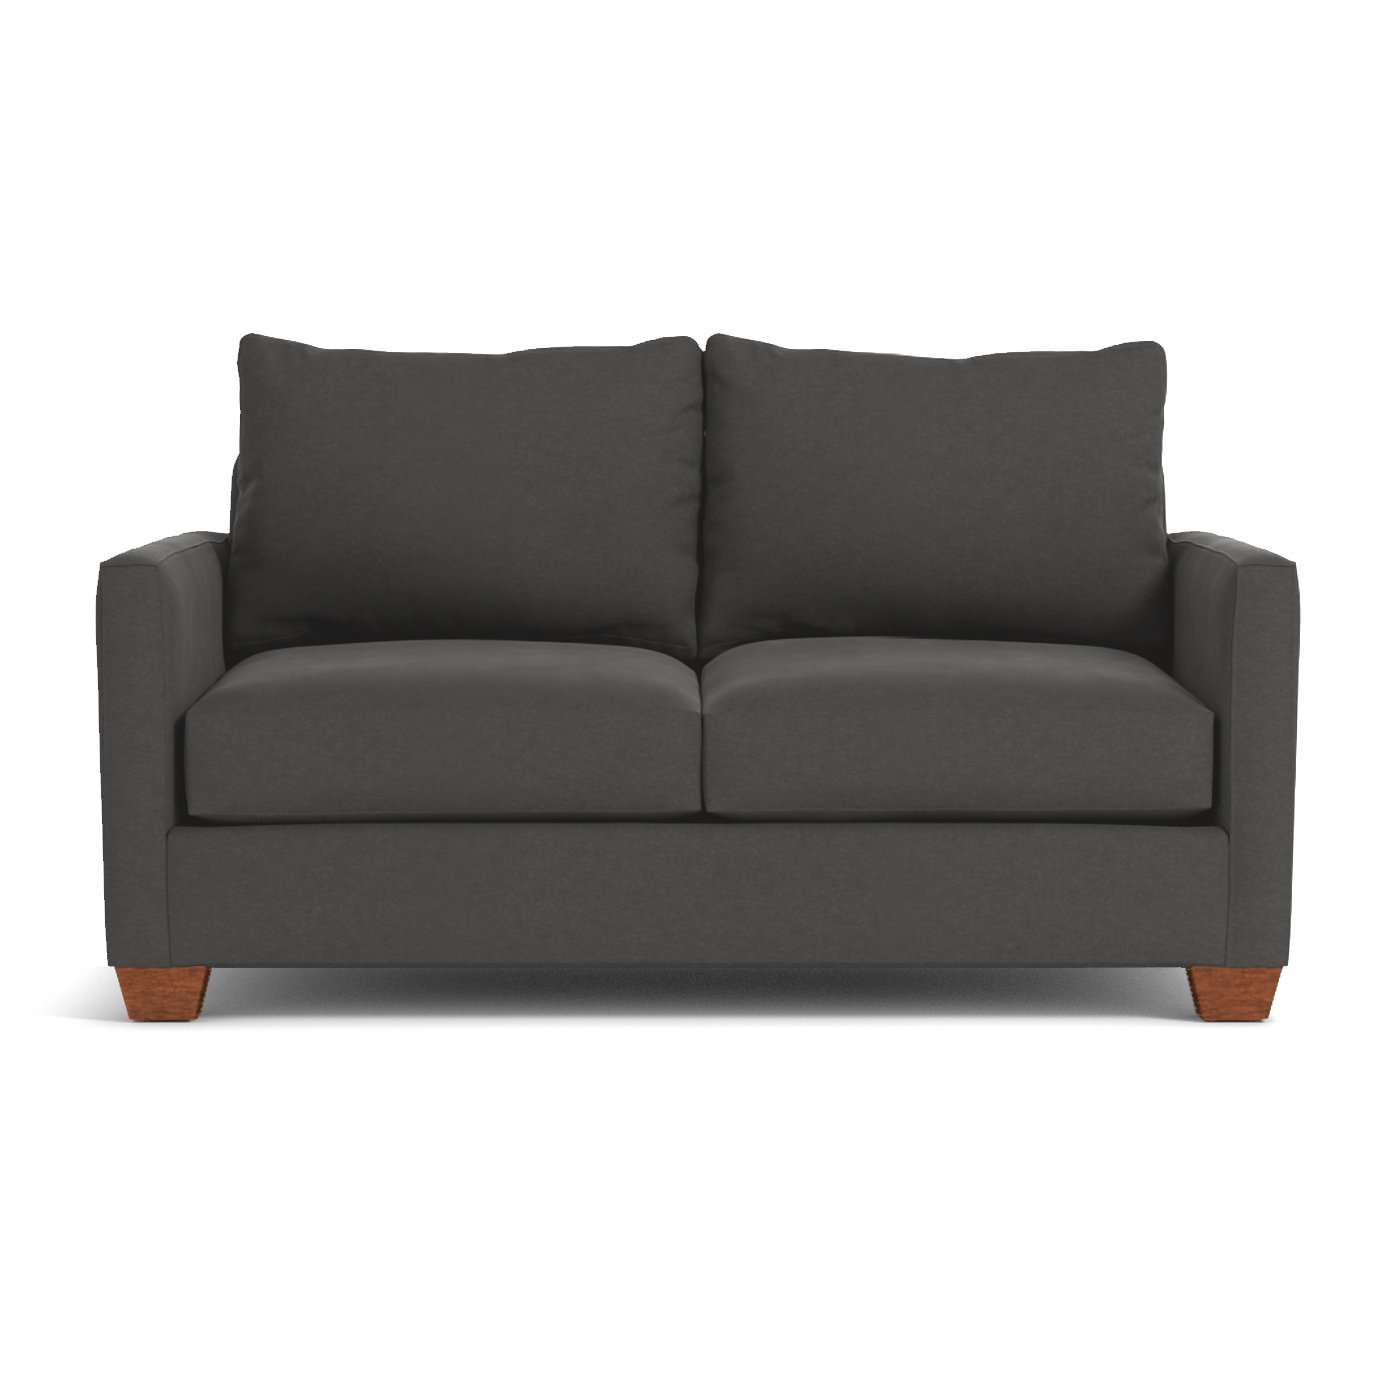 Tuxedo Apartment Size Sleeper Sofa